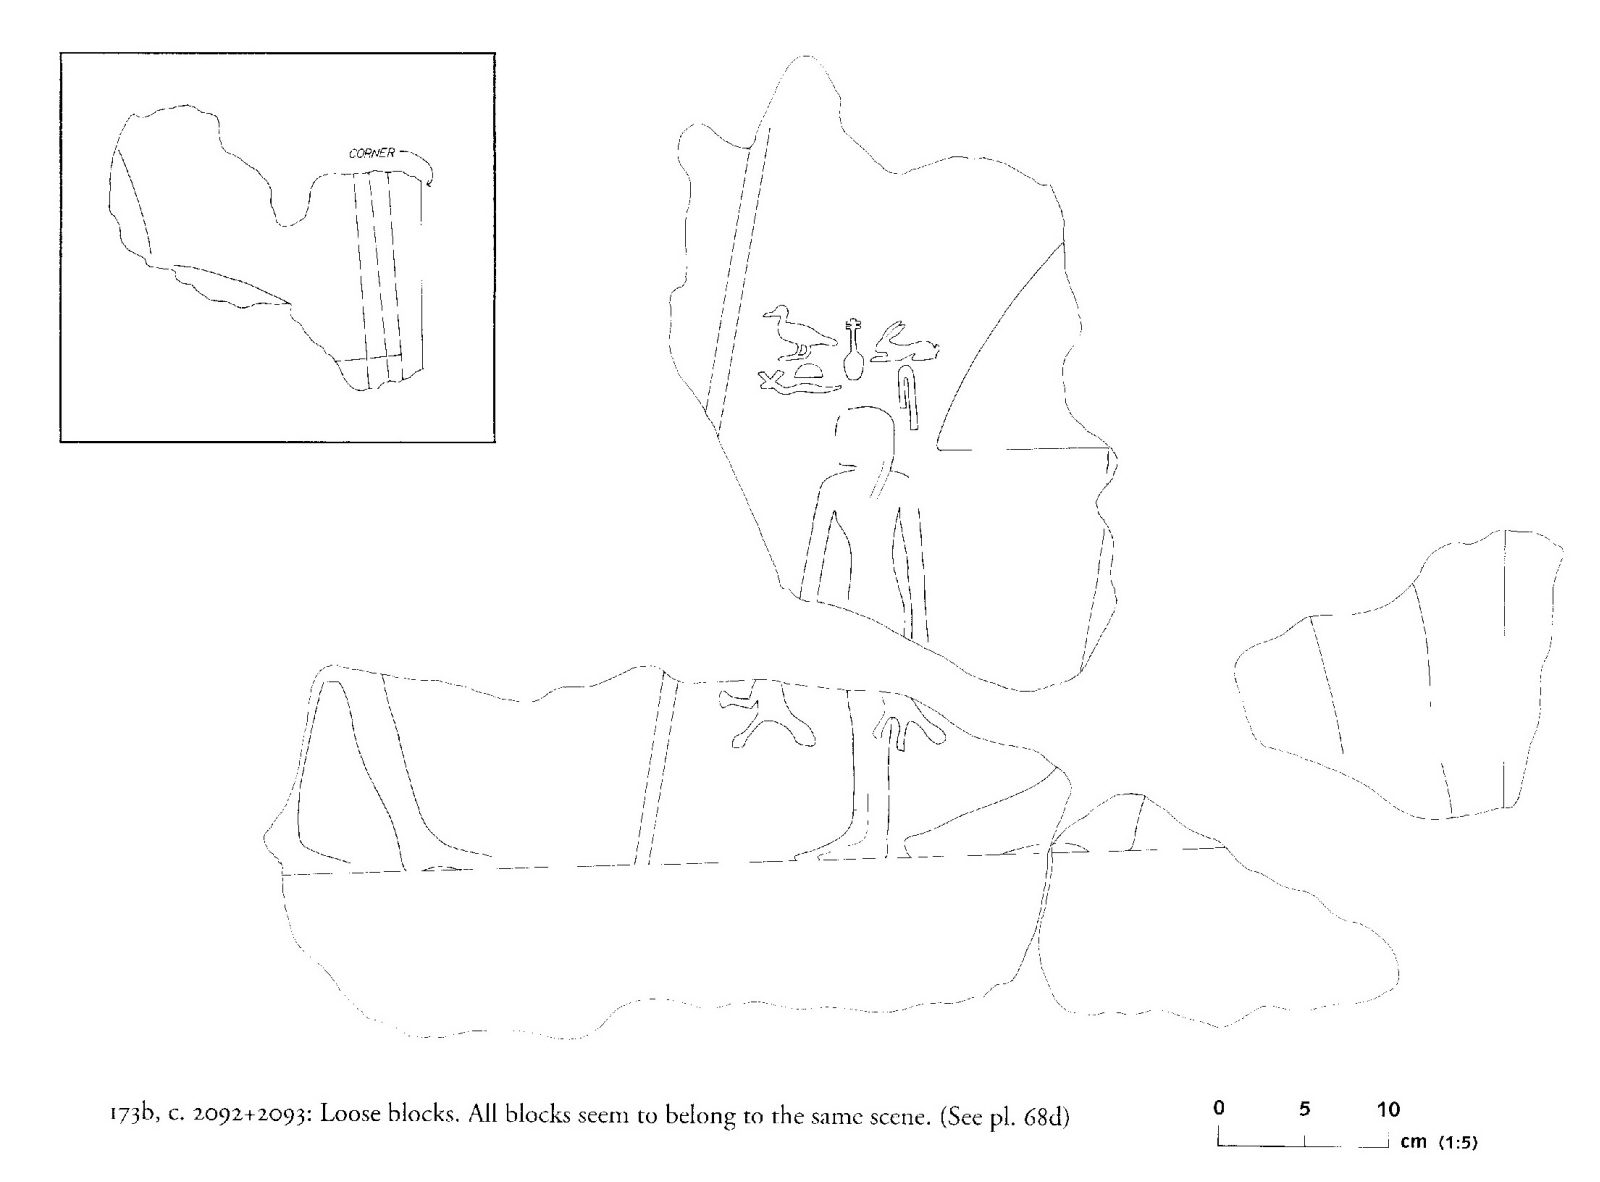 Drawings: G 2092+2093: relief from loose blocks